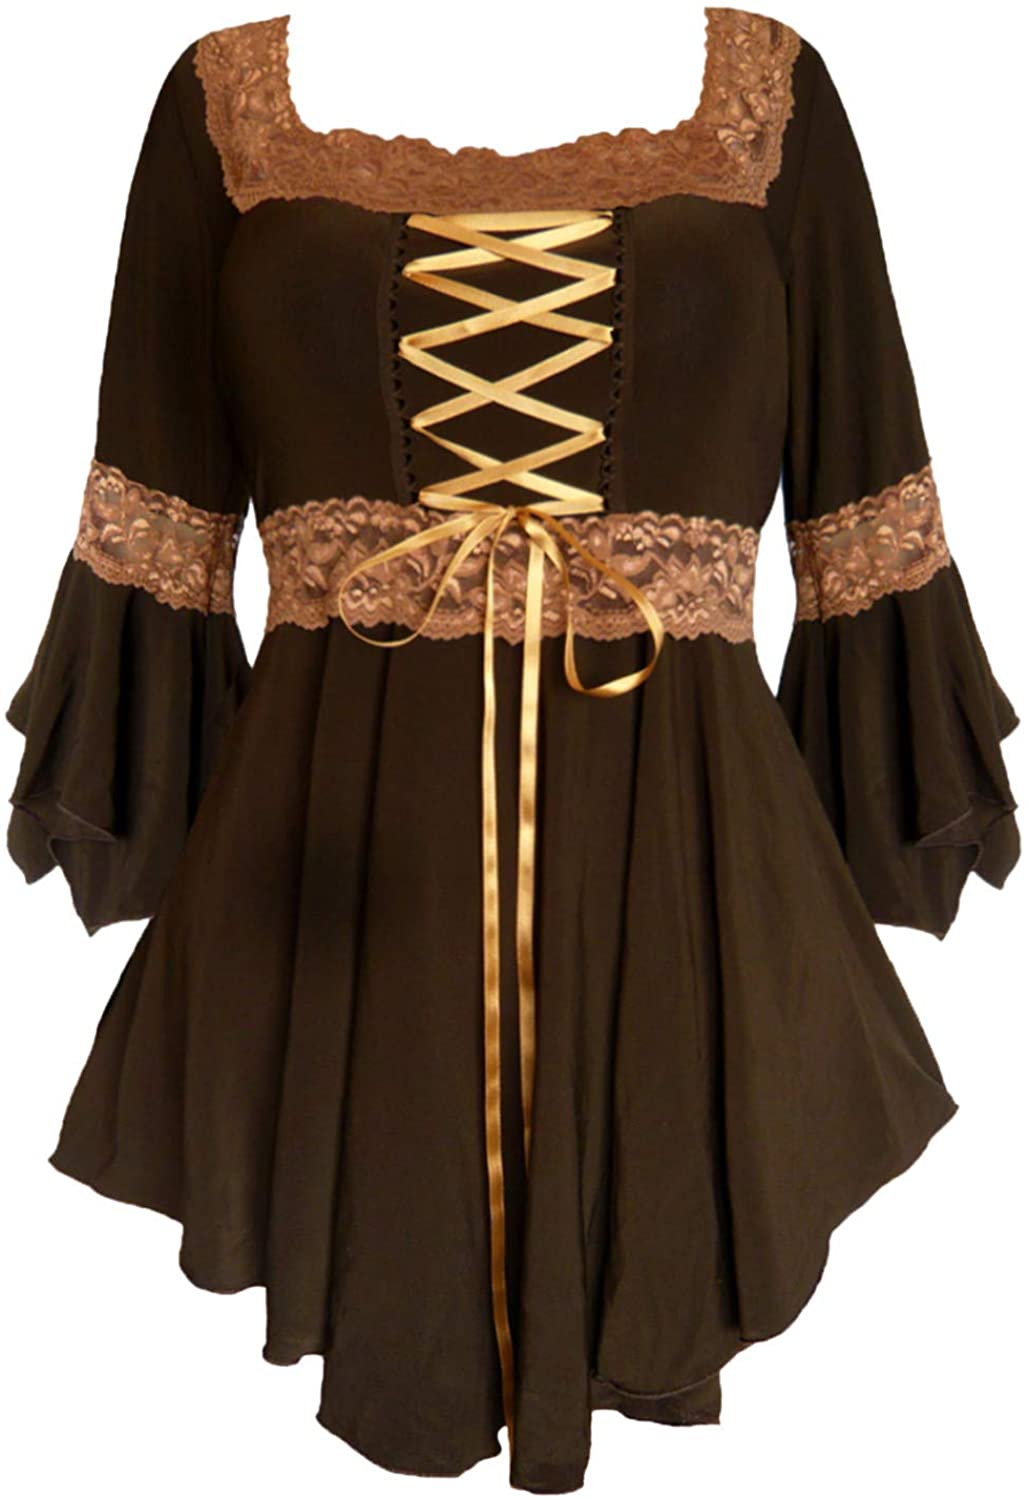 Steampunk Plus Size Clothing & Costumes Dare to Wear Renaissance Corset Top: Victorian Gothic Boho Womens Peasant Festival Fair Cosplay Lace Blouse  AT vintagedancer.com